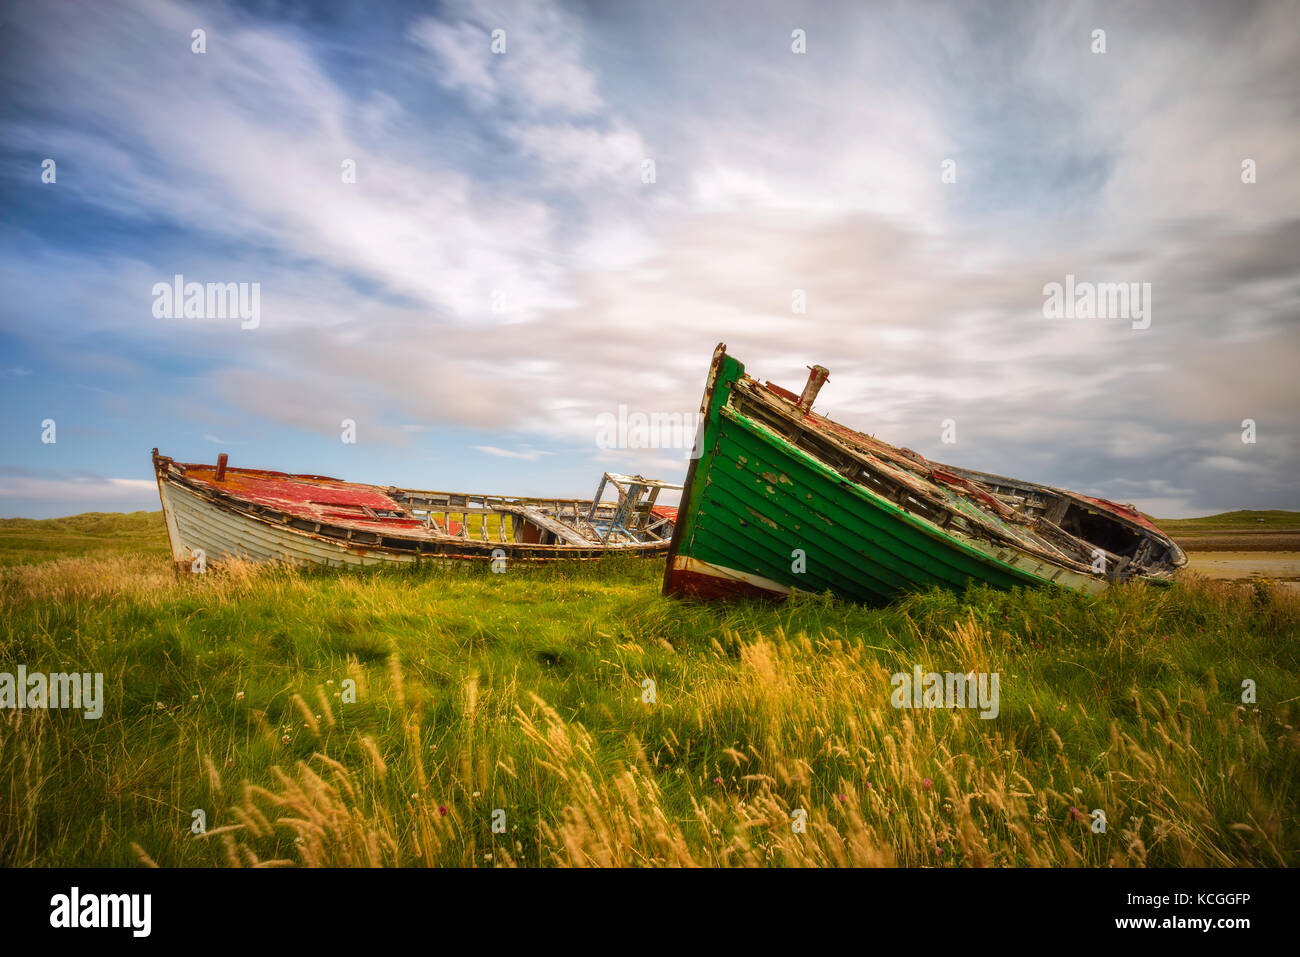 Boat wrecks in Co. Donegal - Ireland - Stock Image